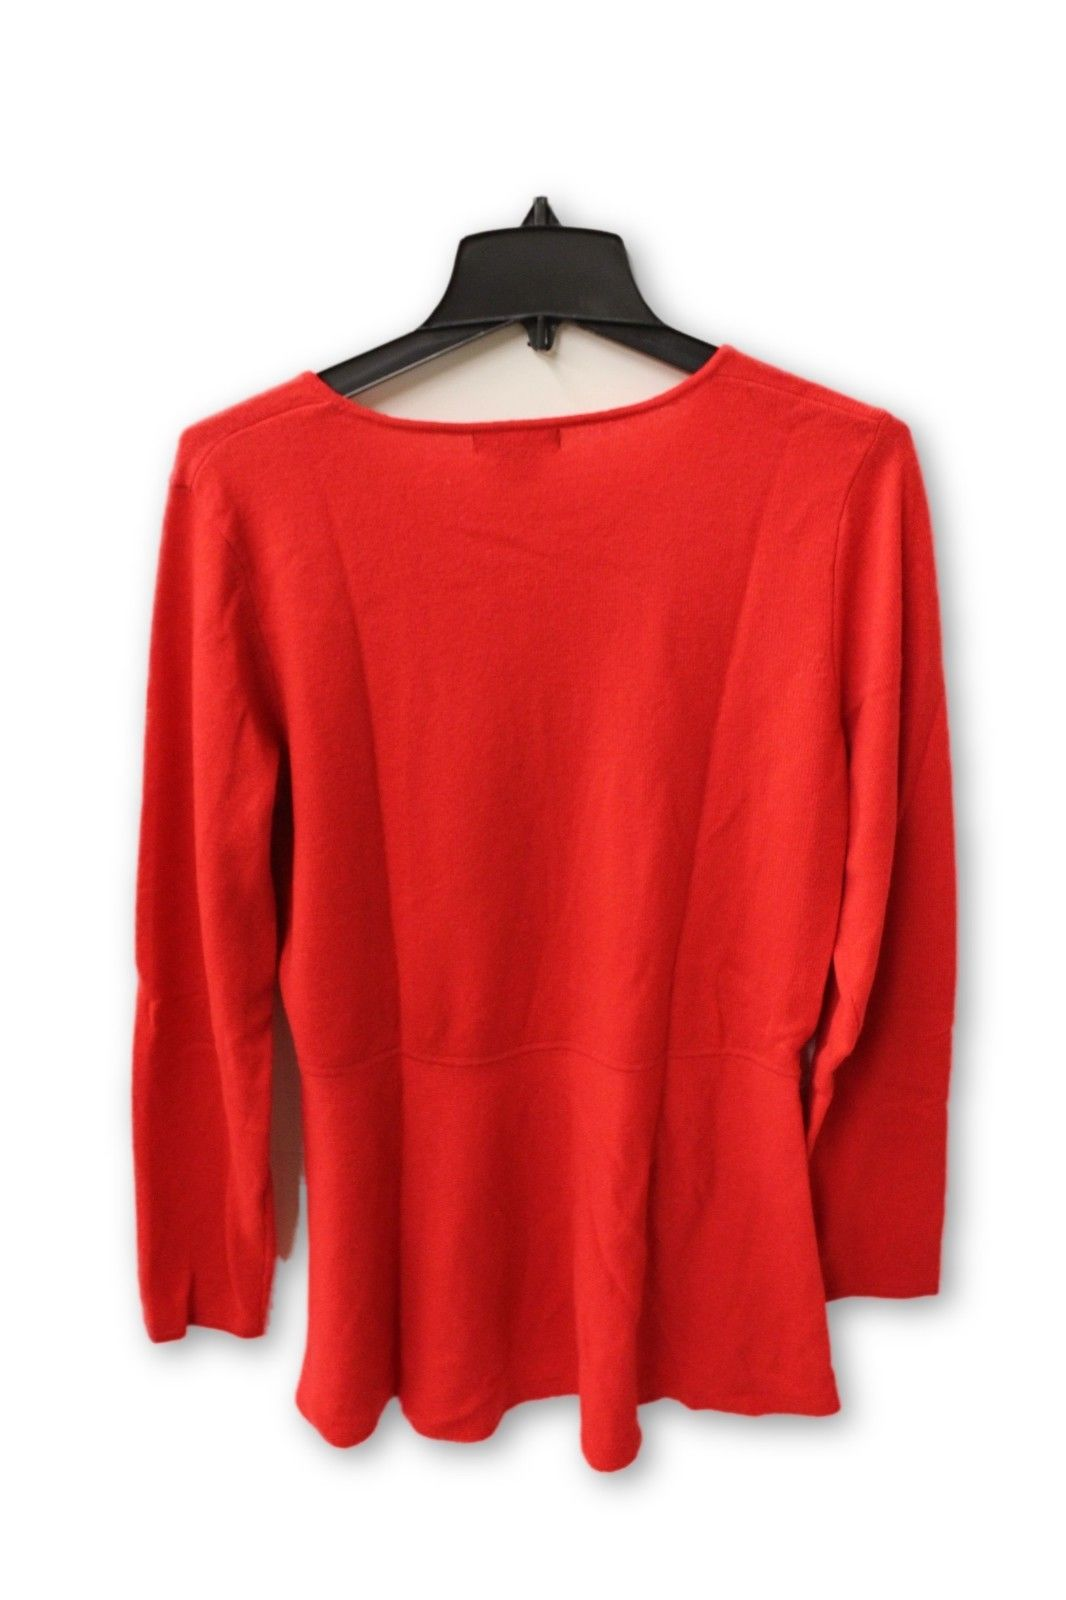 C by Bloomingdale's Women's Cashmere - Red Crew Neck Sweater XL NWT